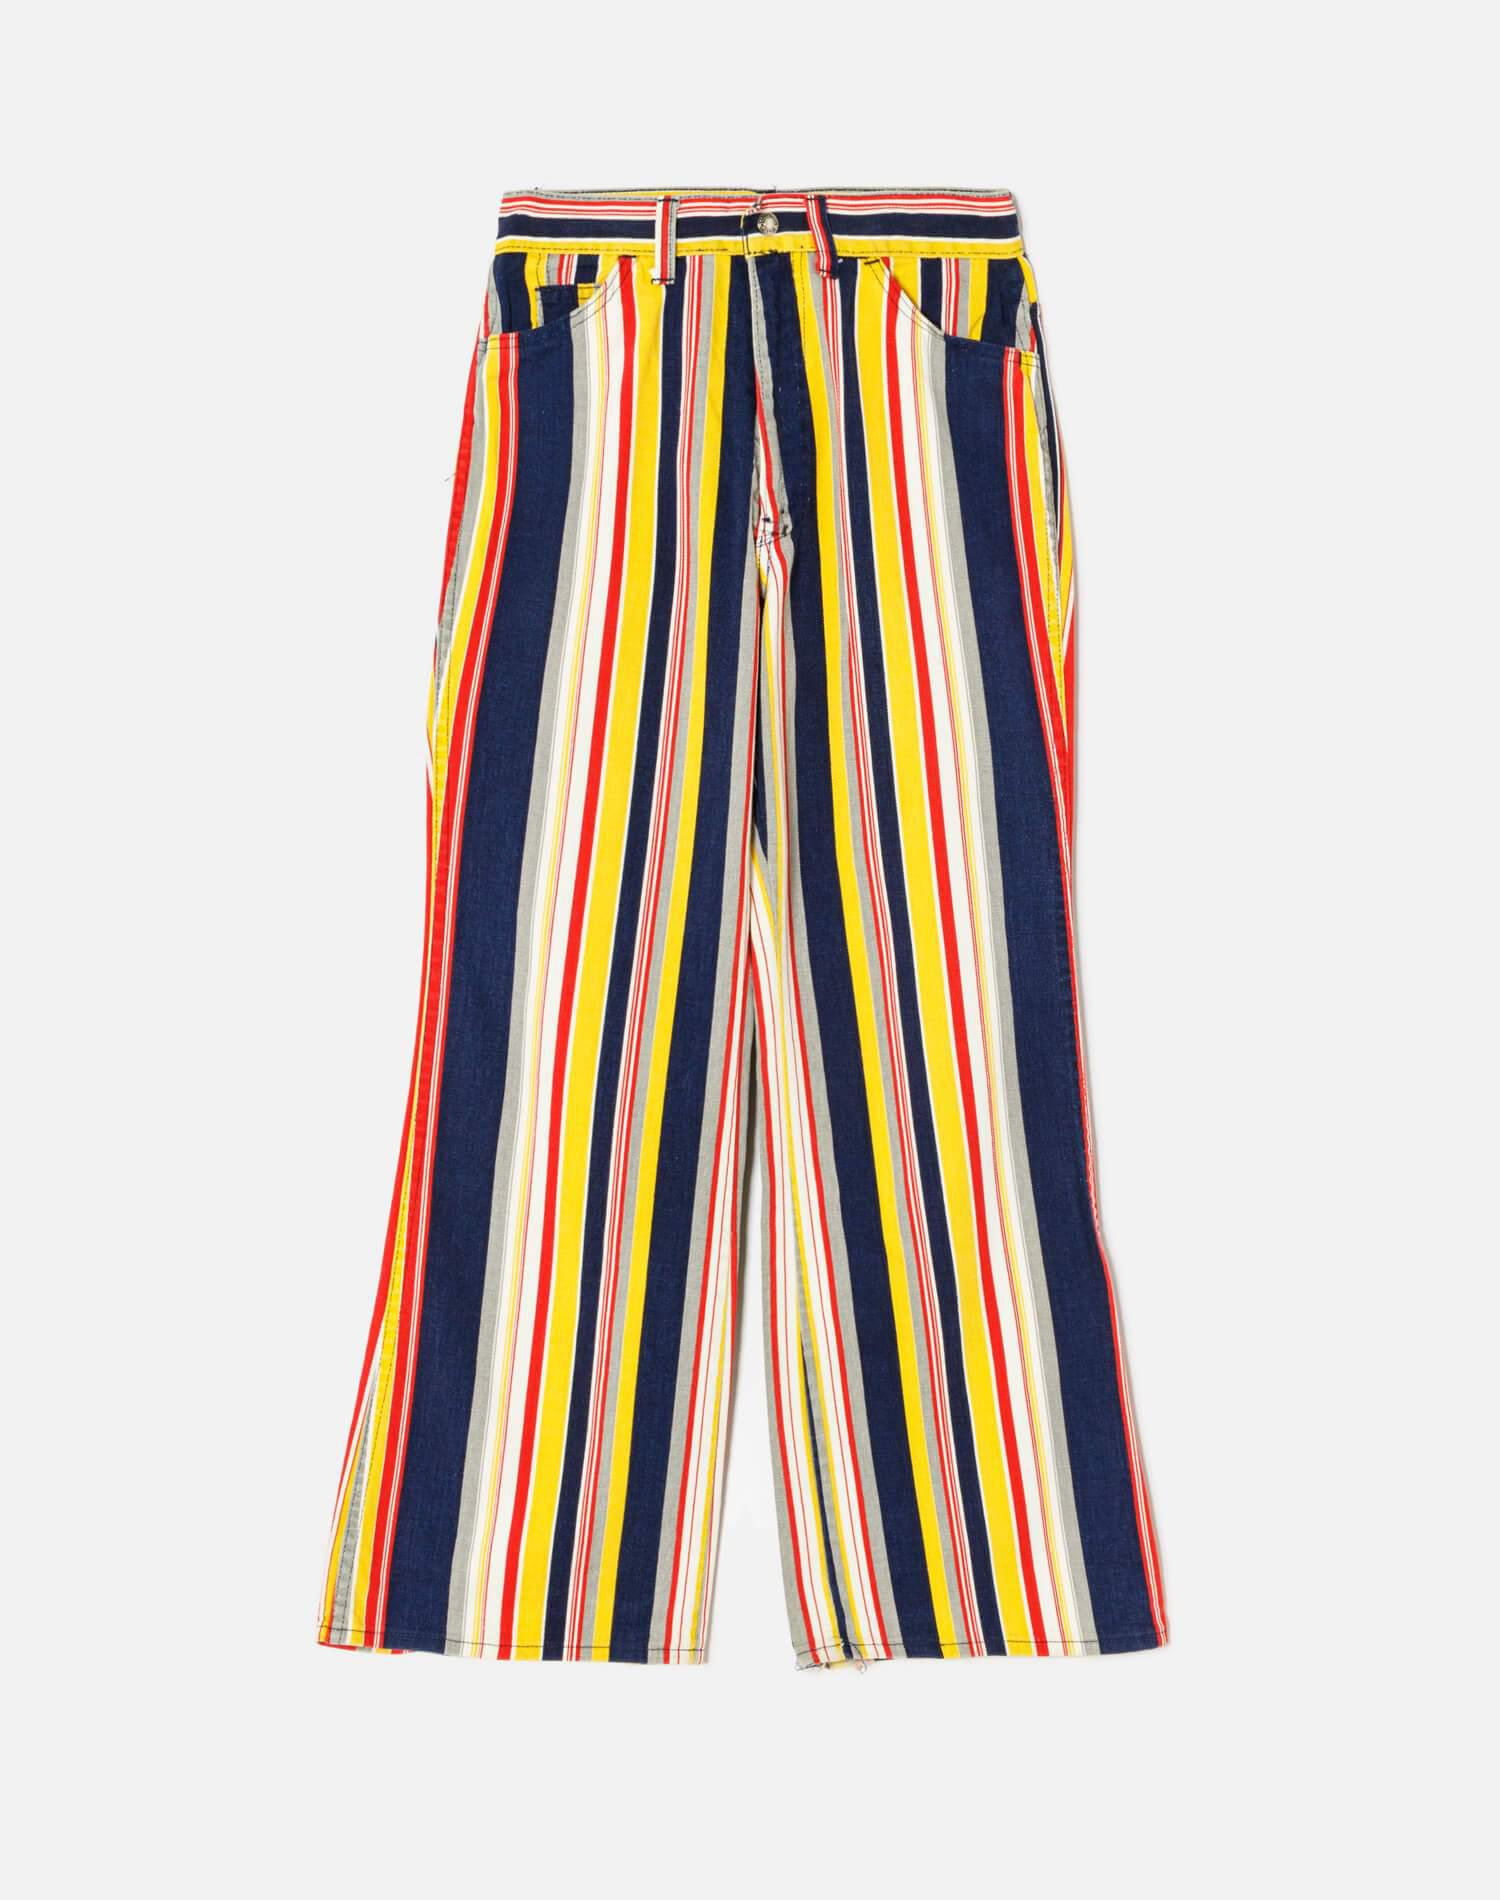 60s/70s High Rise Flare Striped Levi's For Gals Size 24 - #209